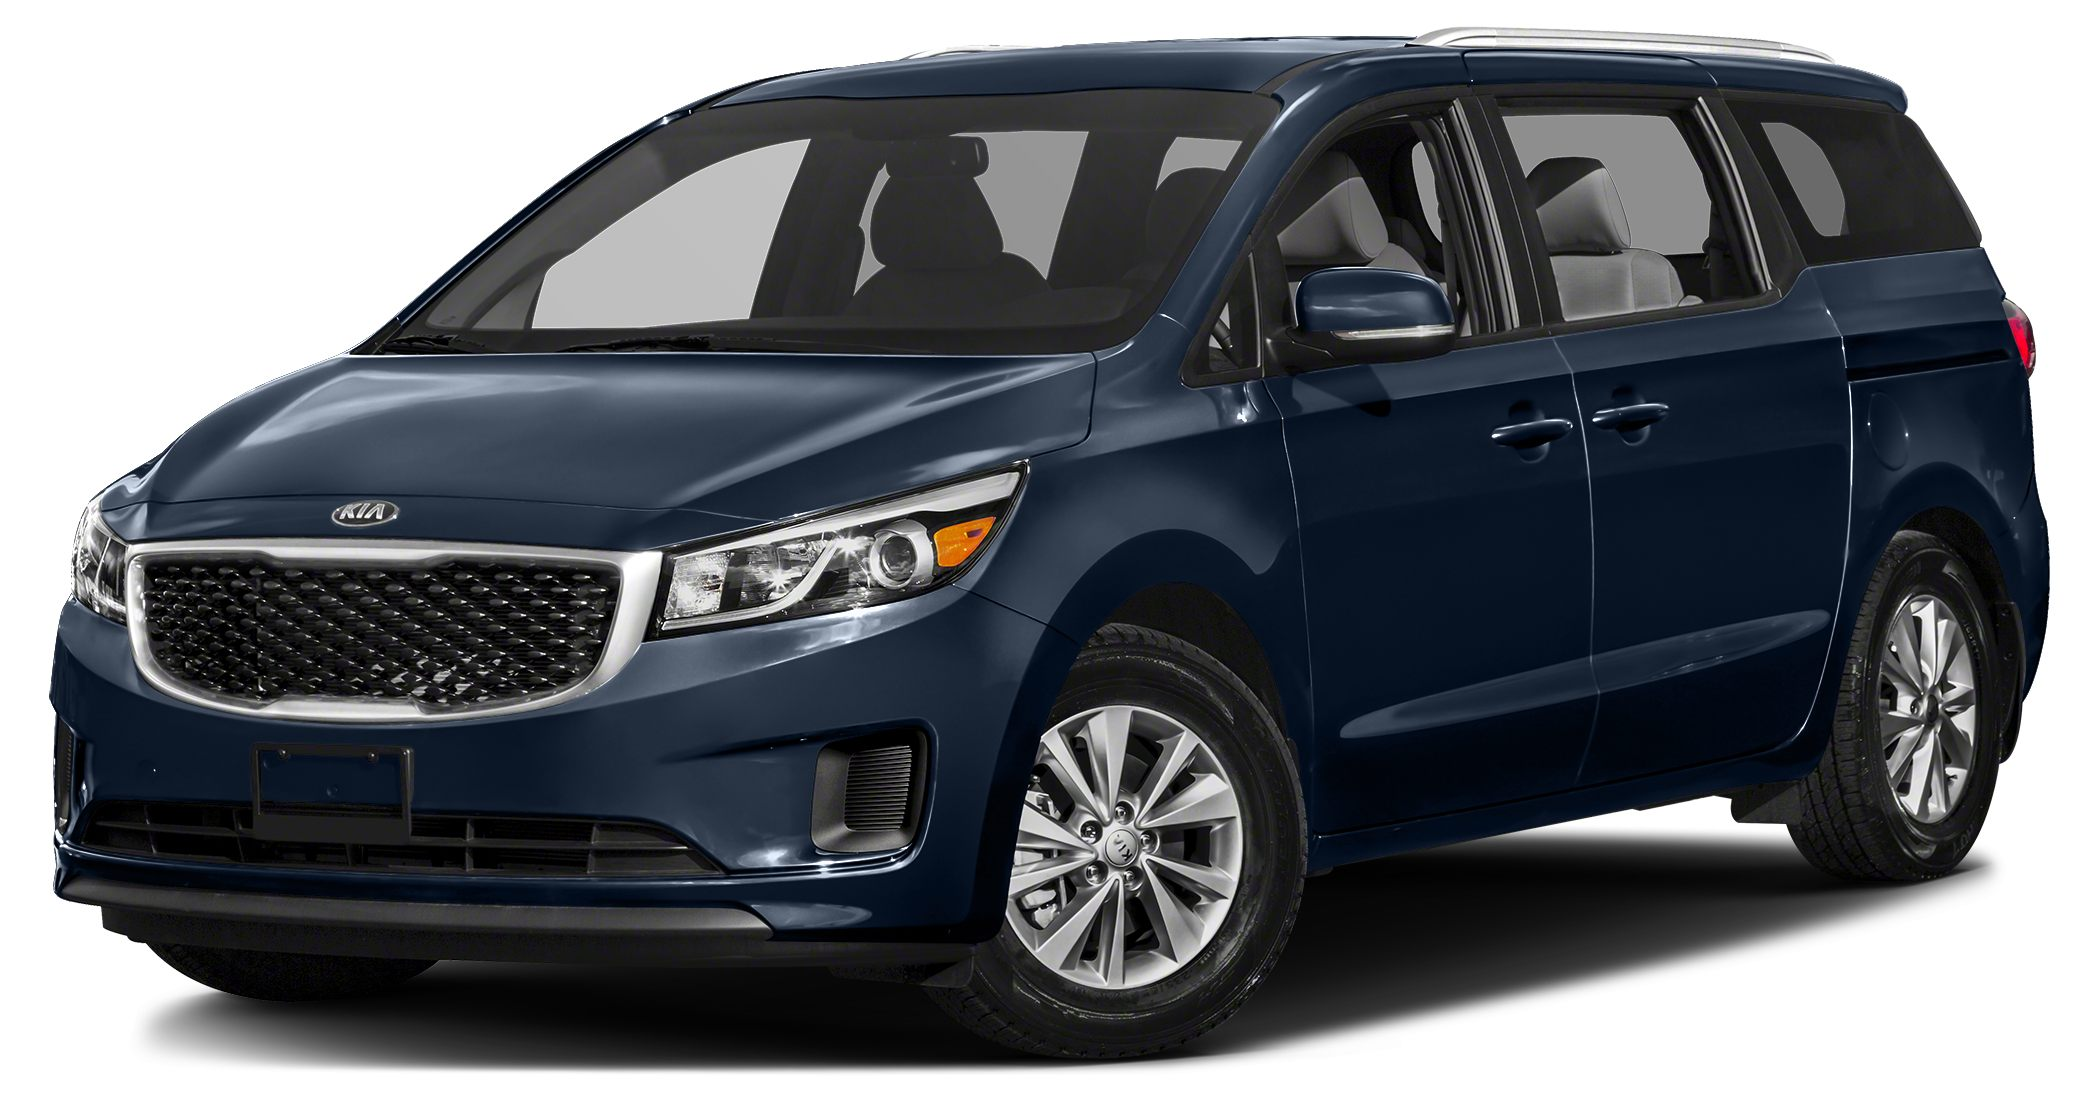 2016 Kia Sedona LX The 2016 Kia Sedona remains a figure of exterior styling and interior functiona